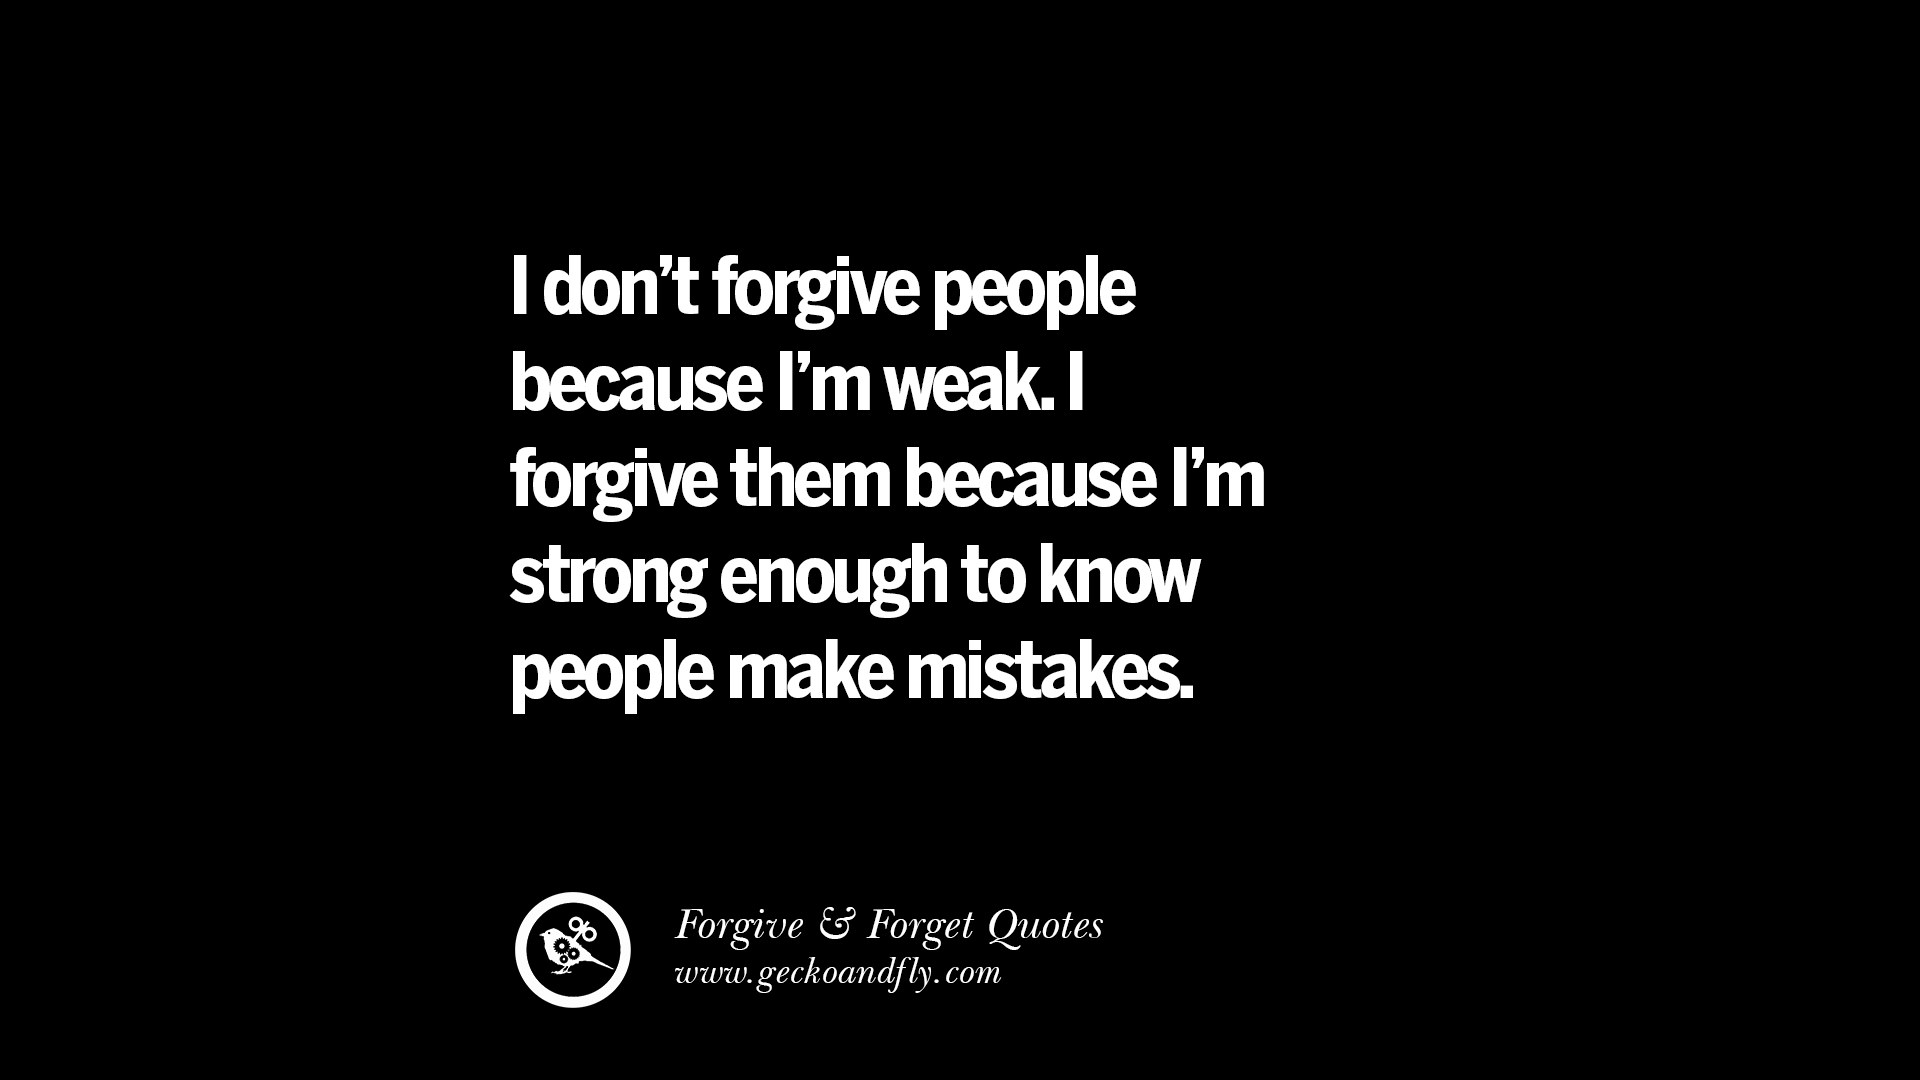 50 Quotes On Forgive And Forget When Someone Hurts You In A Relationship